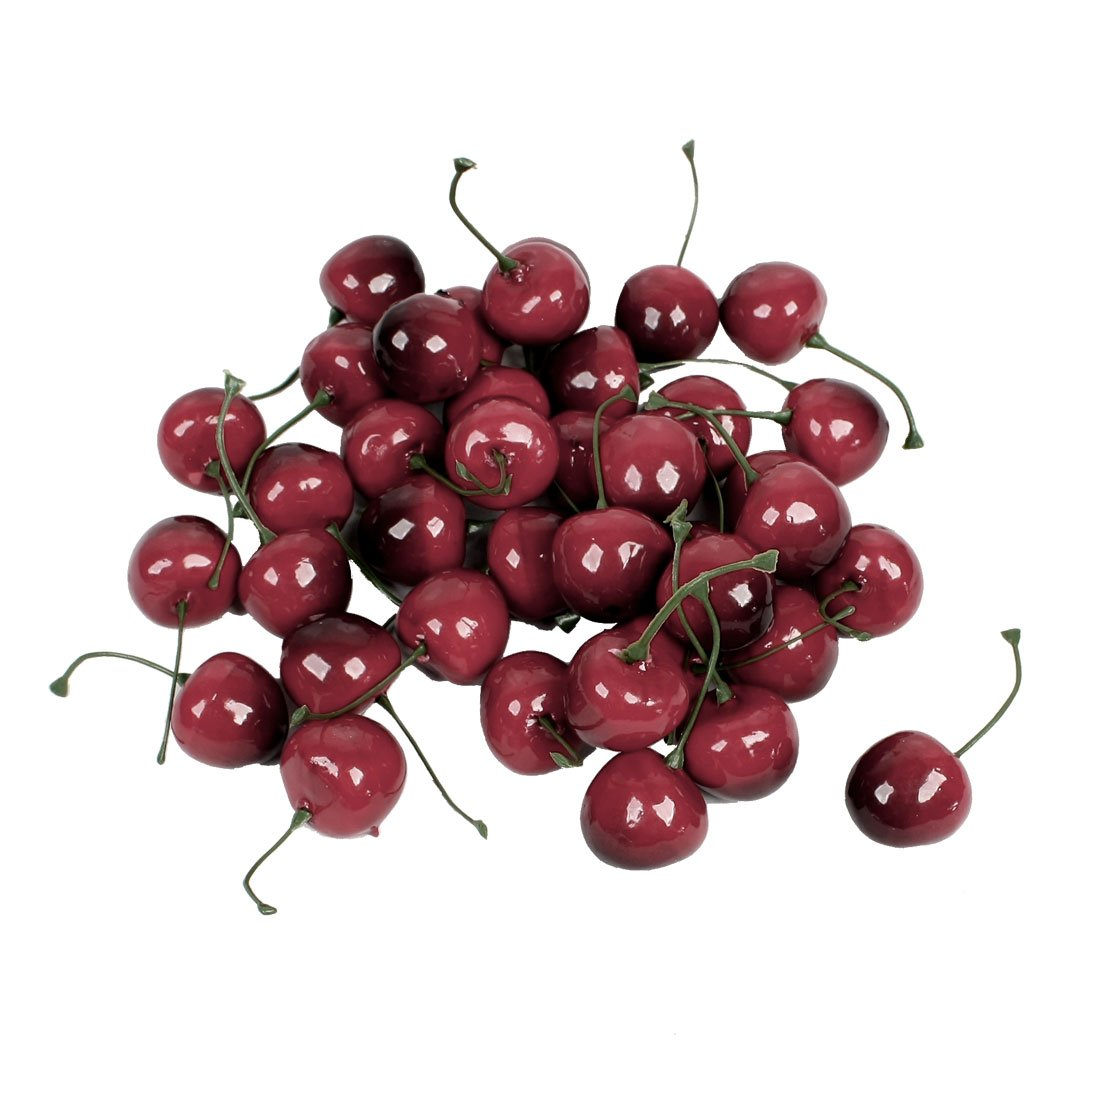 Faux fake craft cherry simulation fruits decor desk for Artificial cherries decoration